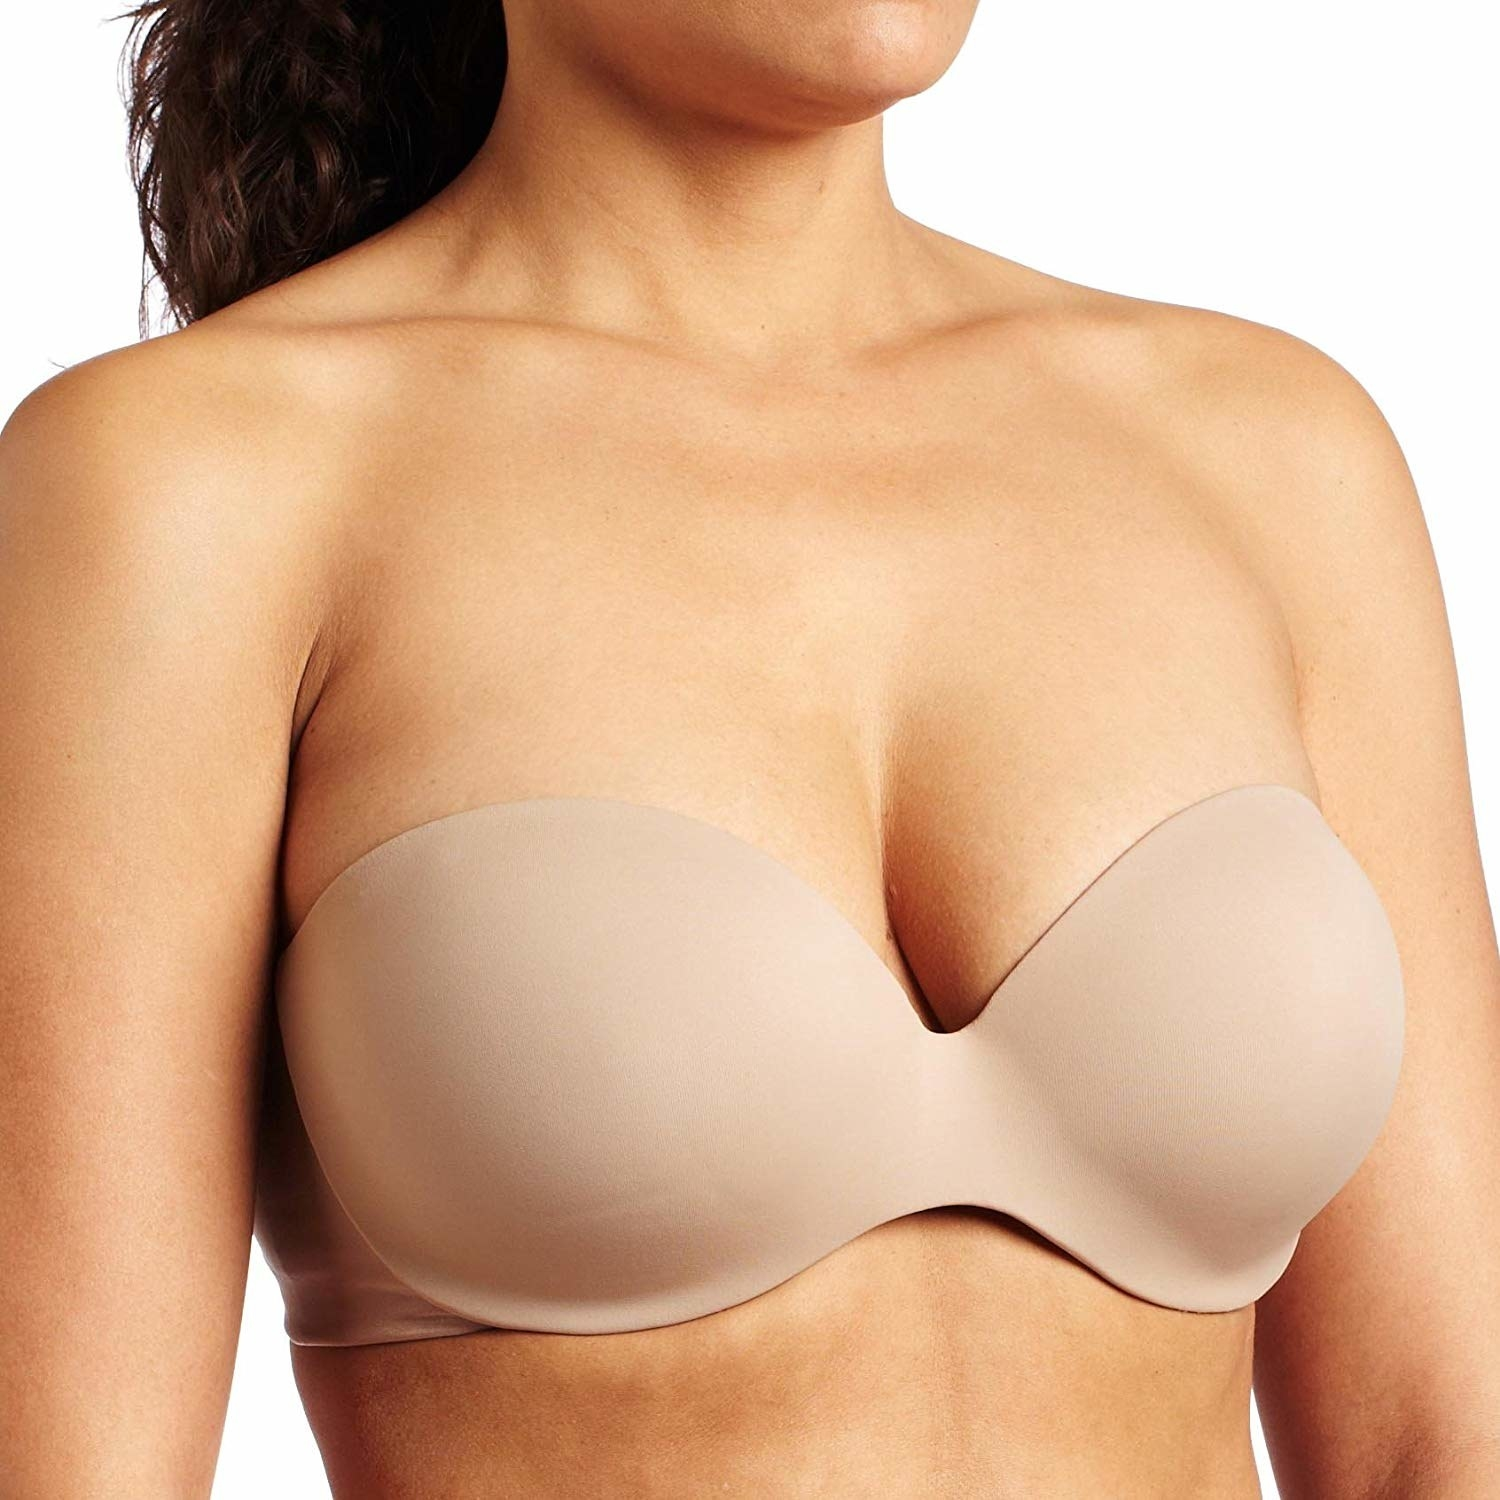 c07492114f5 A seamless bra with padding around the underwire that makes it a revolution  in comfort. No more poke-y wires!